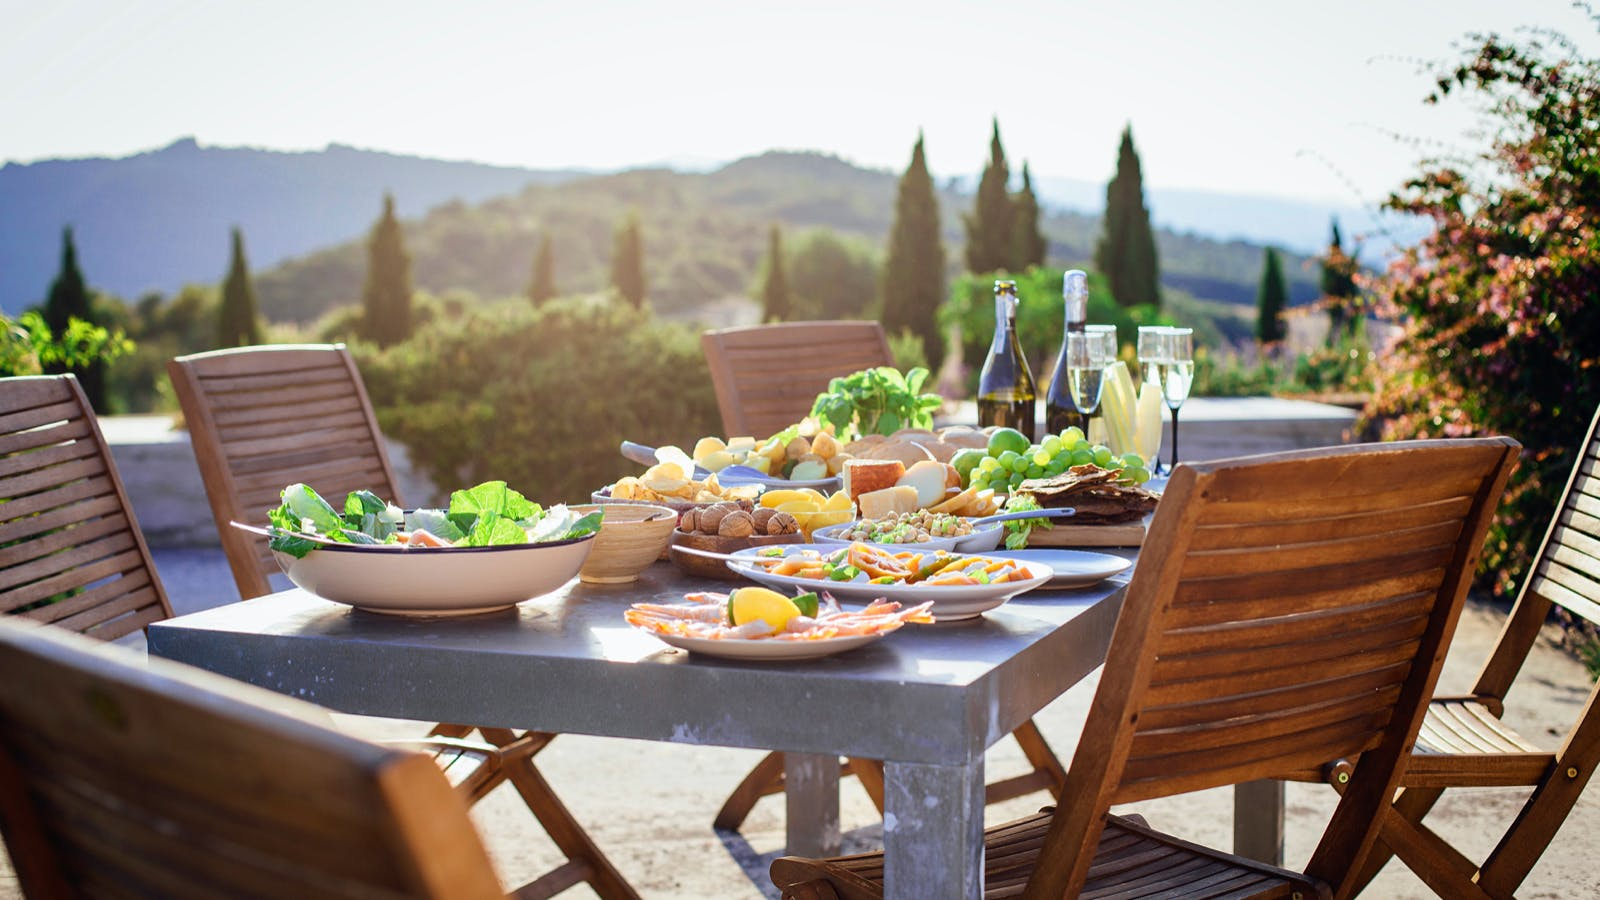 The Mediterranean Diet—Including a Daily Glass of Wine—May Lower Risk of Depression